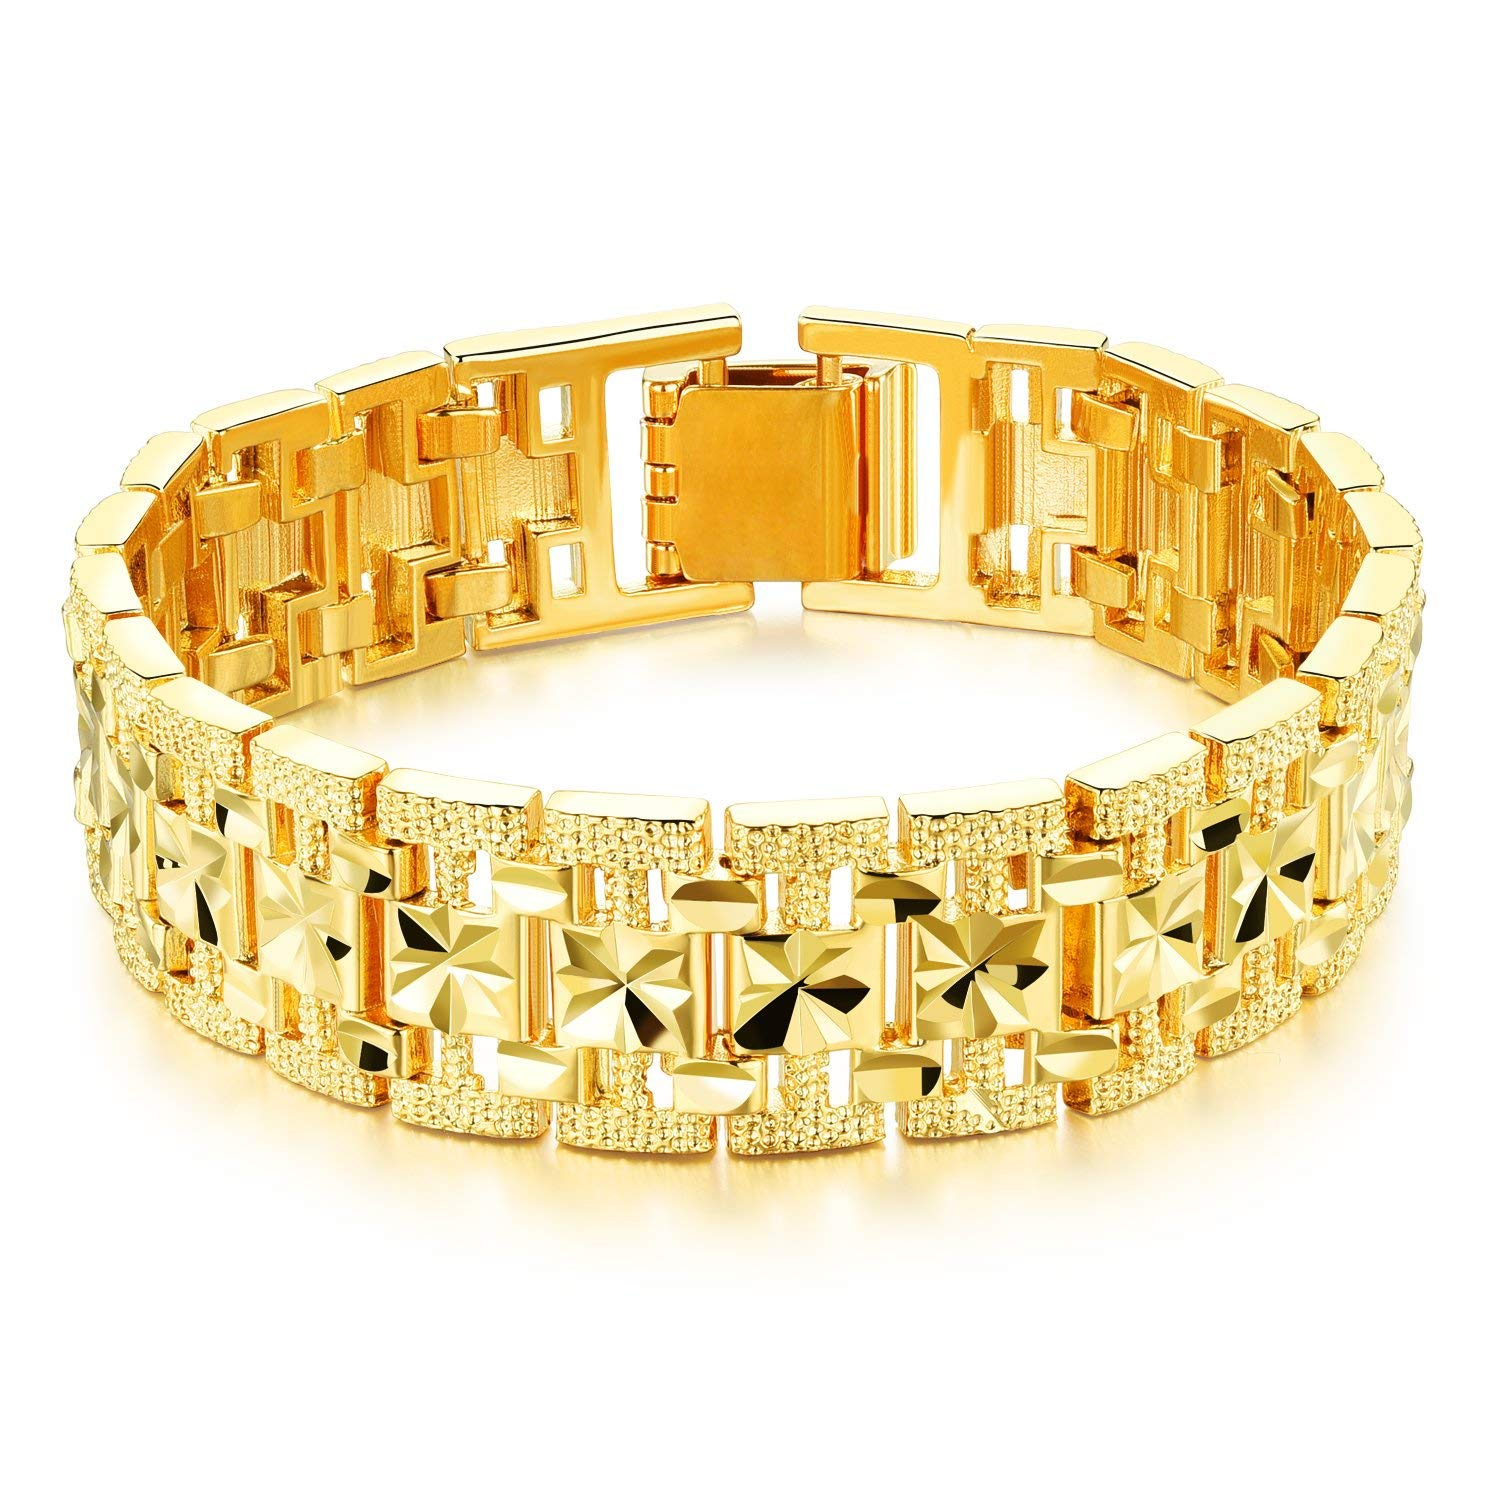 8dfd9caf4 Get Quotations · Opk Jewelry Fashion 18k Yellow Gold Plated Men's Link  Bracelet Carving Wristband,15mm Wide,